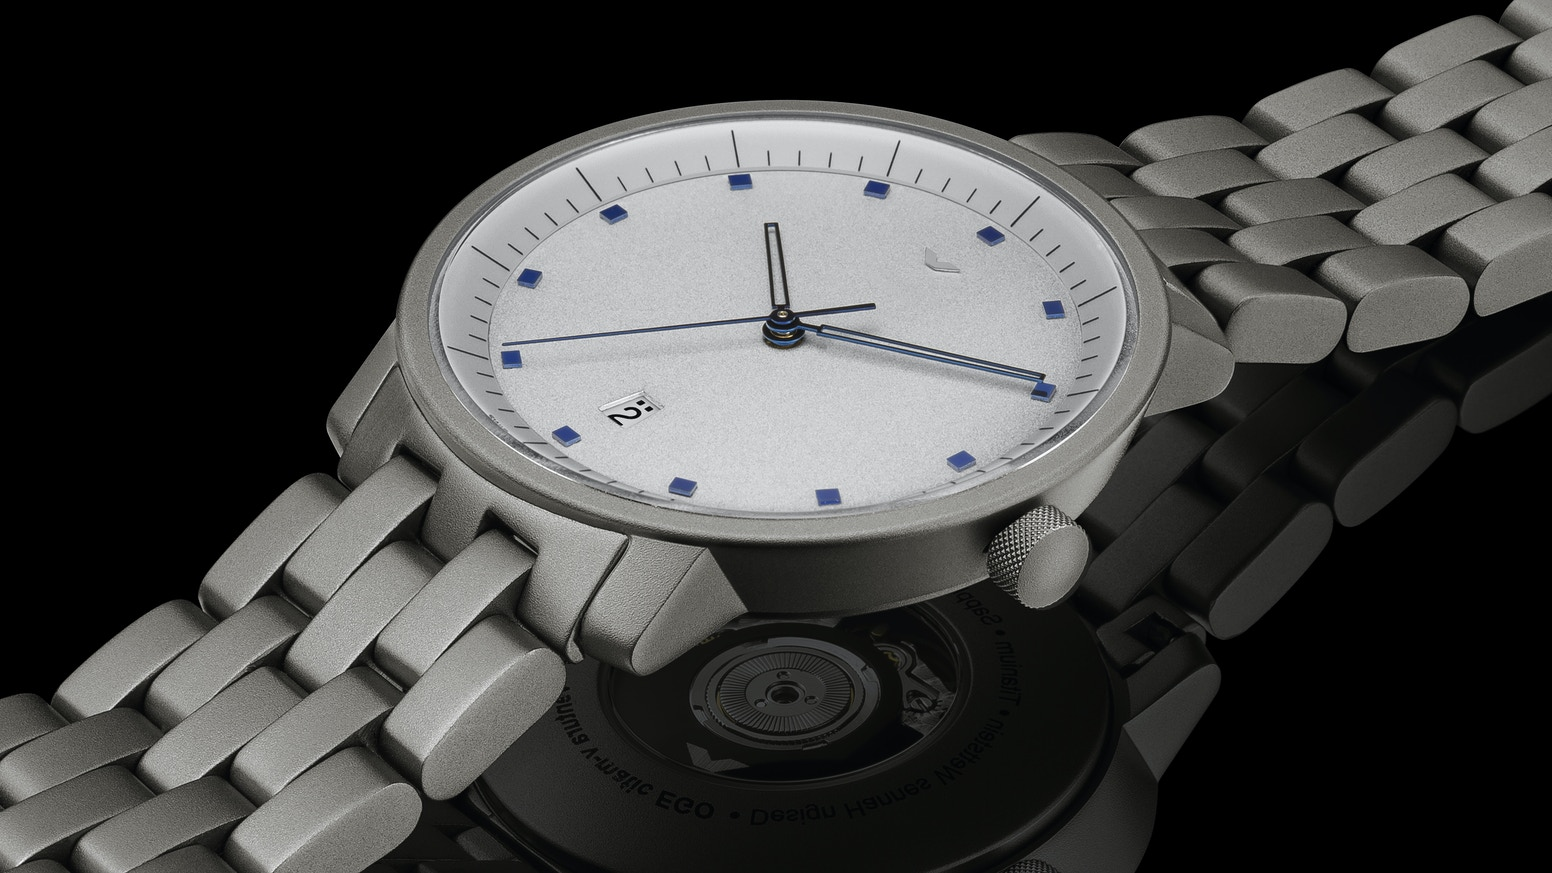 The return of a premium Swiss Made automatic watch, designed by Hannes Wettstein in 1994.